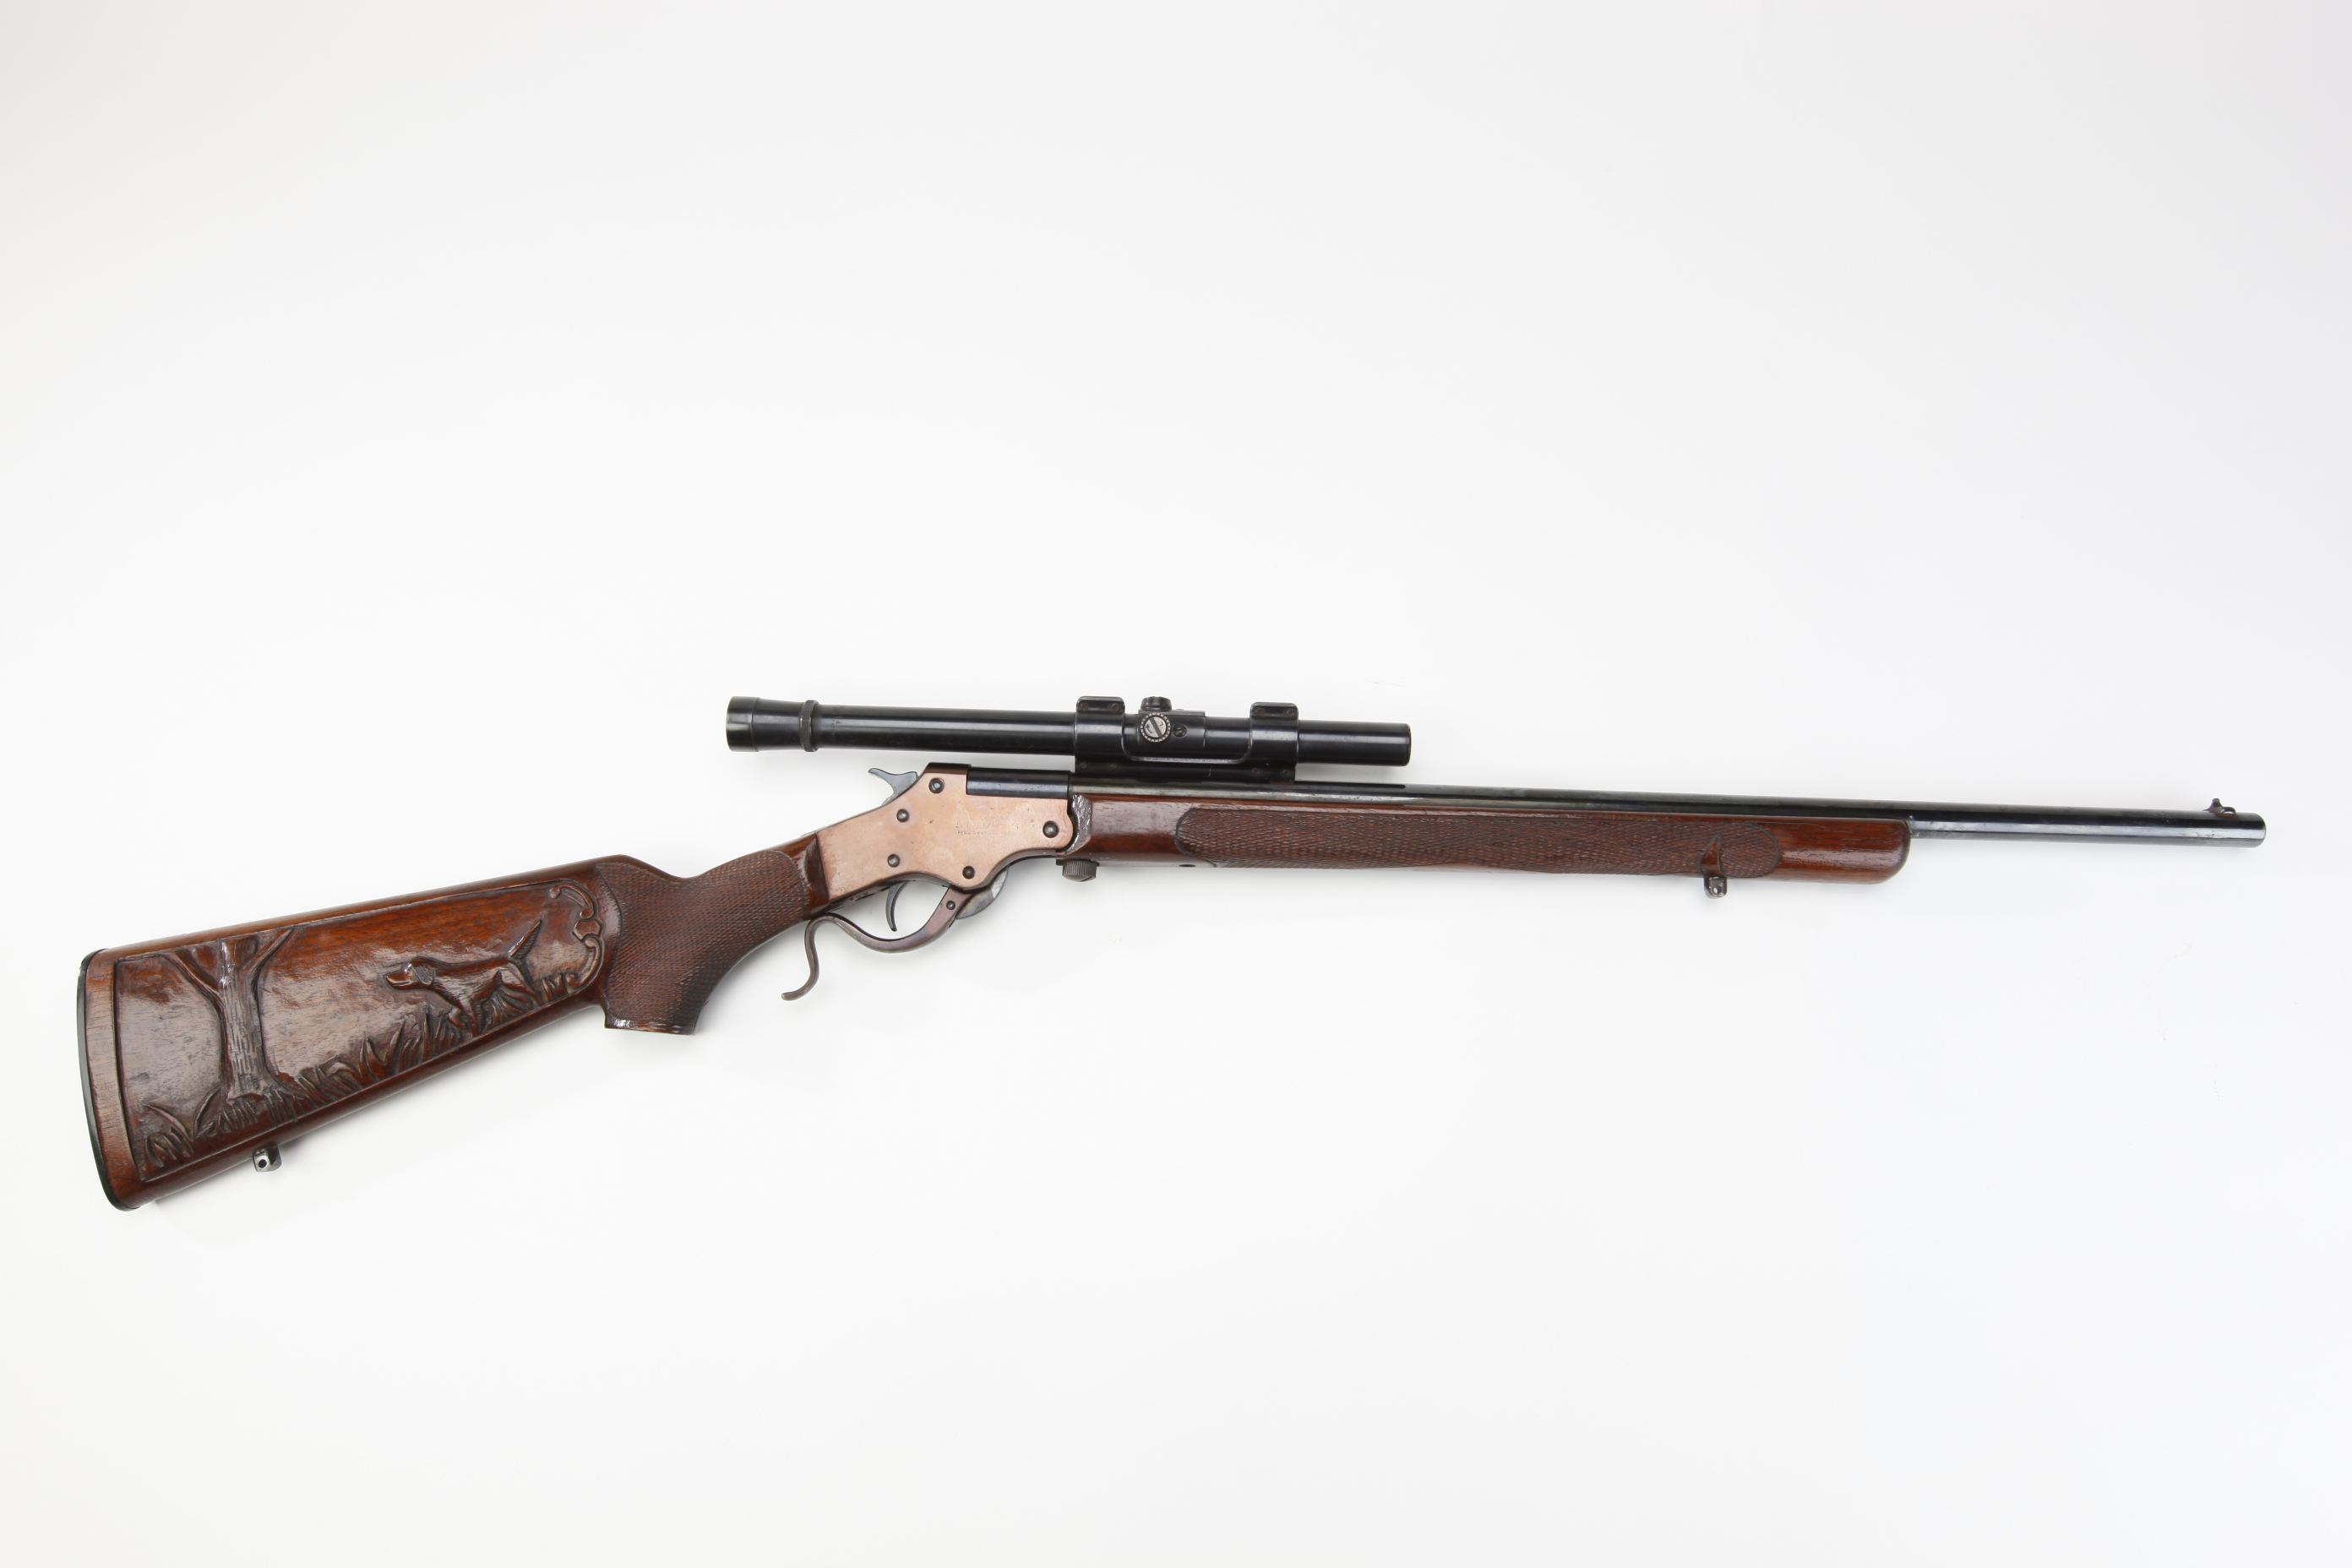 Stevens No 12 Marksman Single Shot Rifle w Weaver B4 telescopic sight